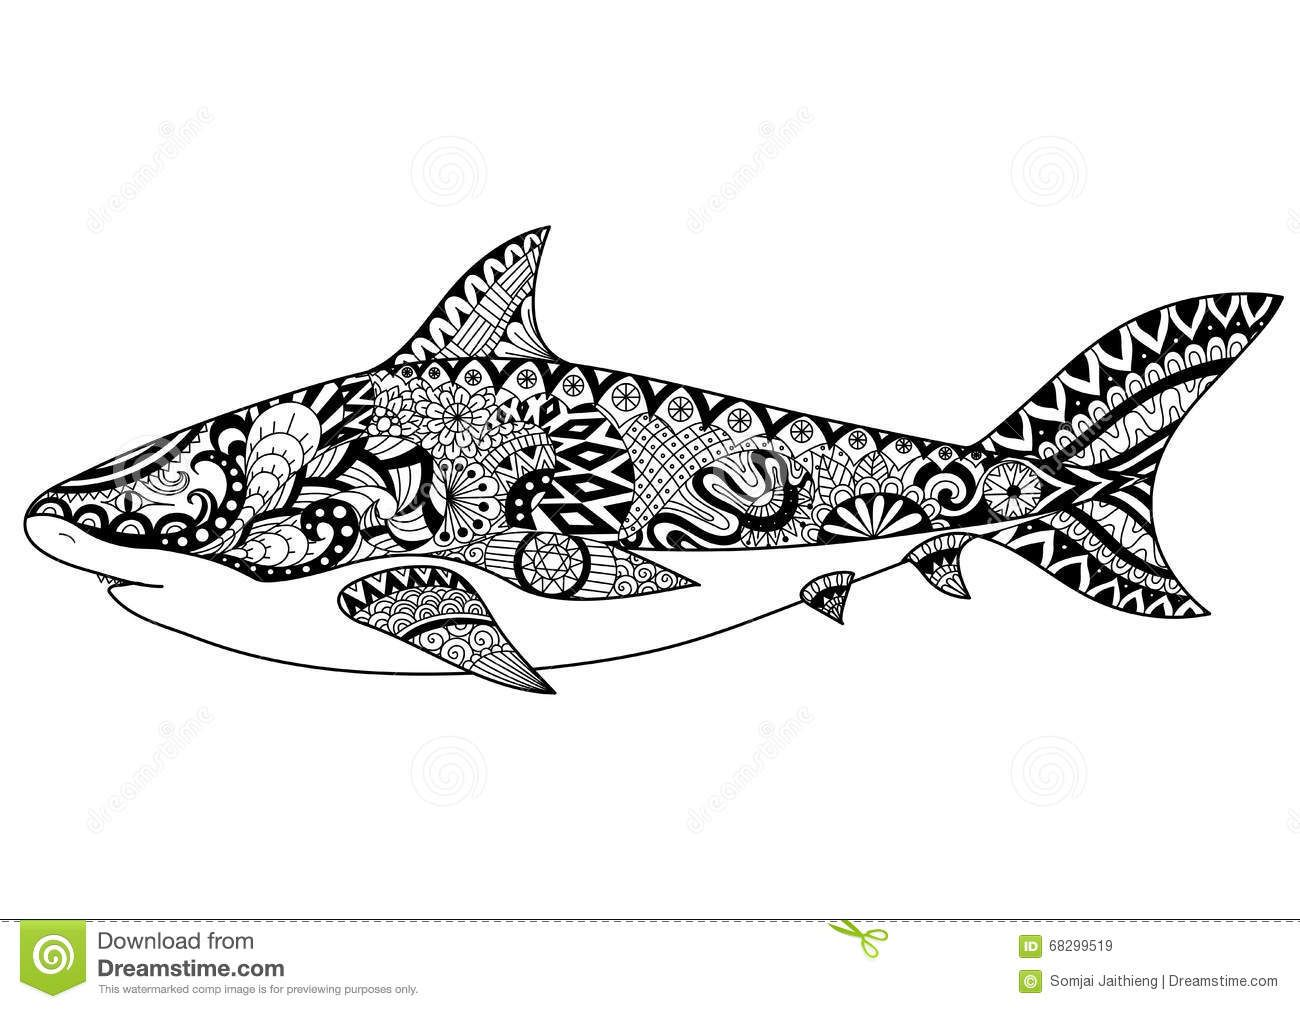 Coloring pages sharks - Searching